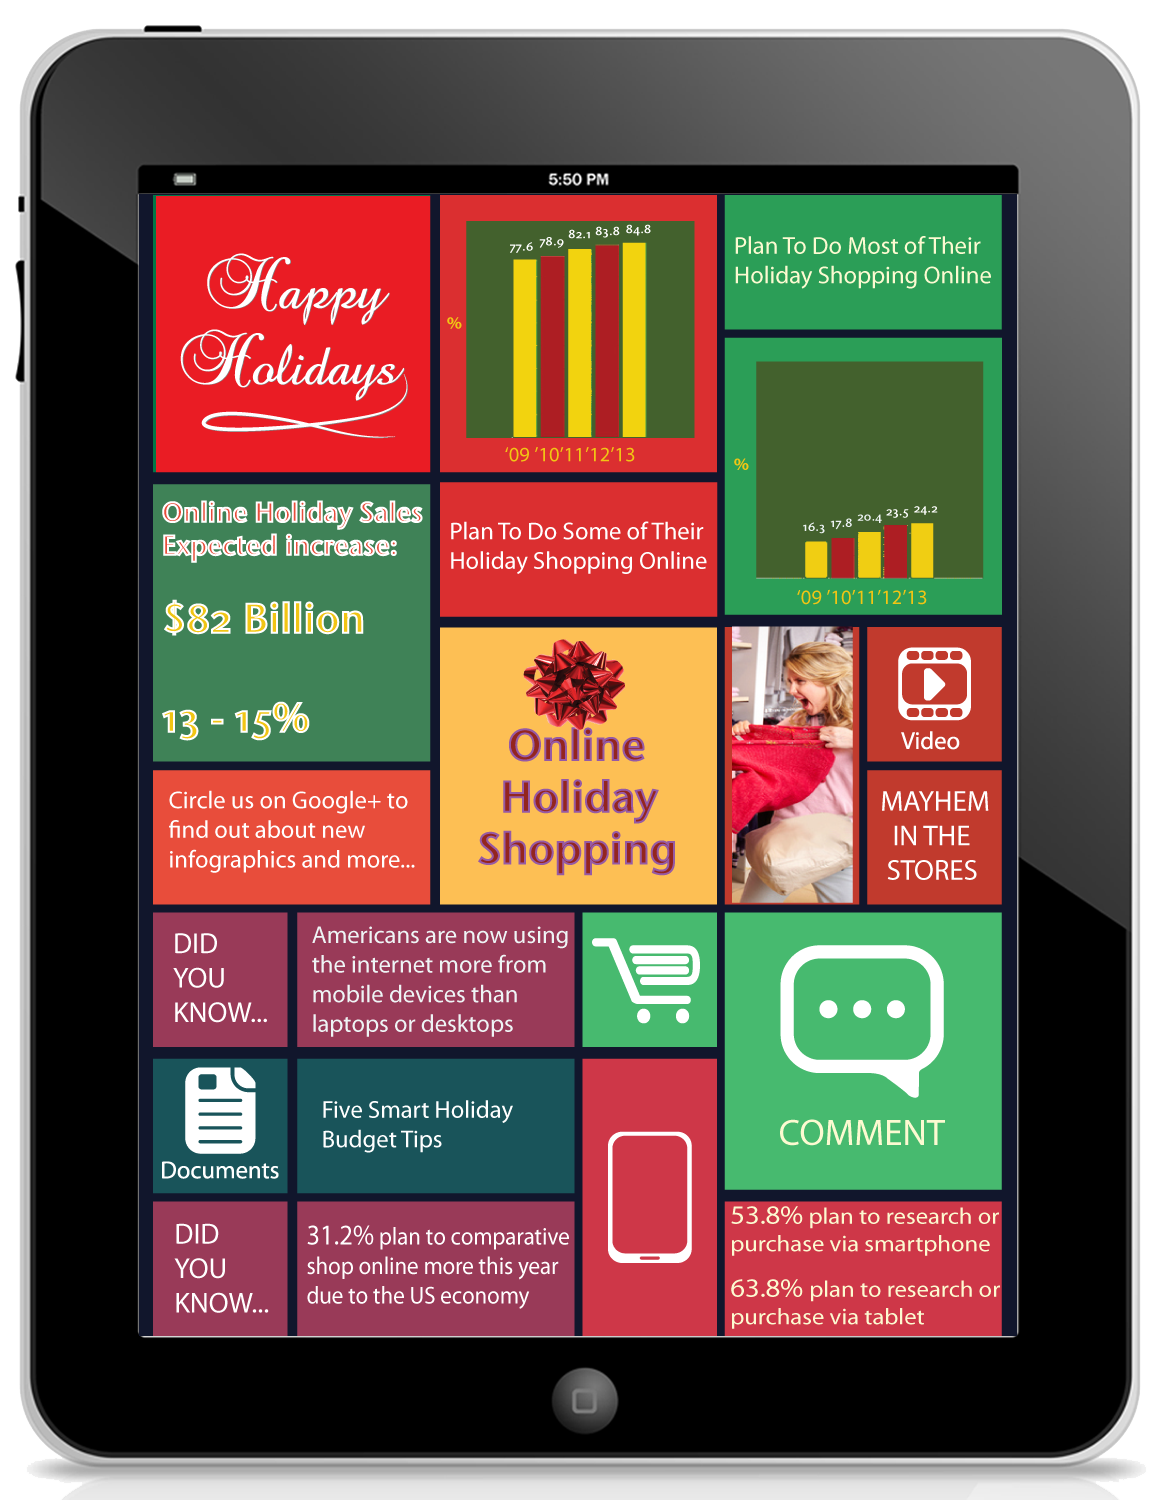 Online Holiday Shopping 2013 infographic